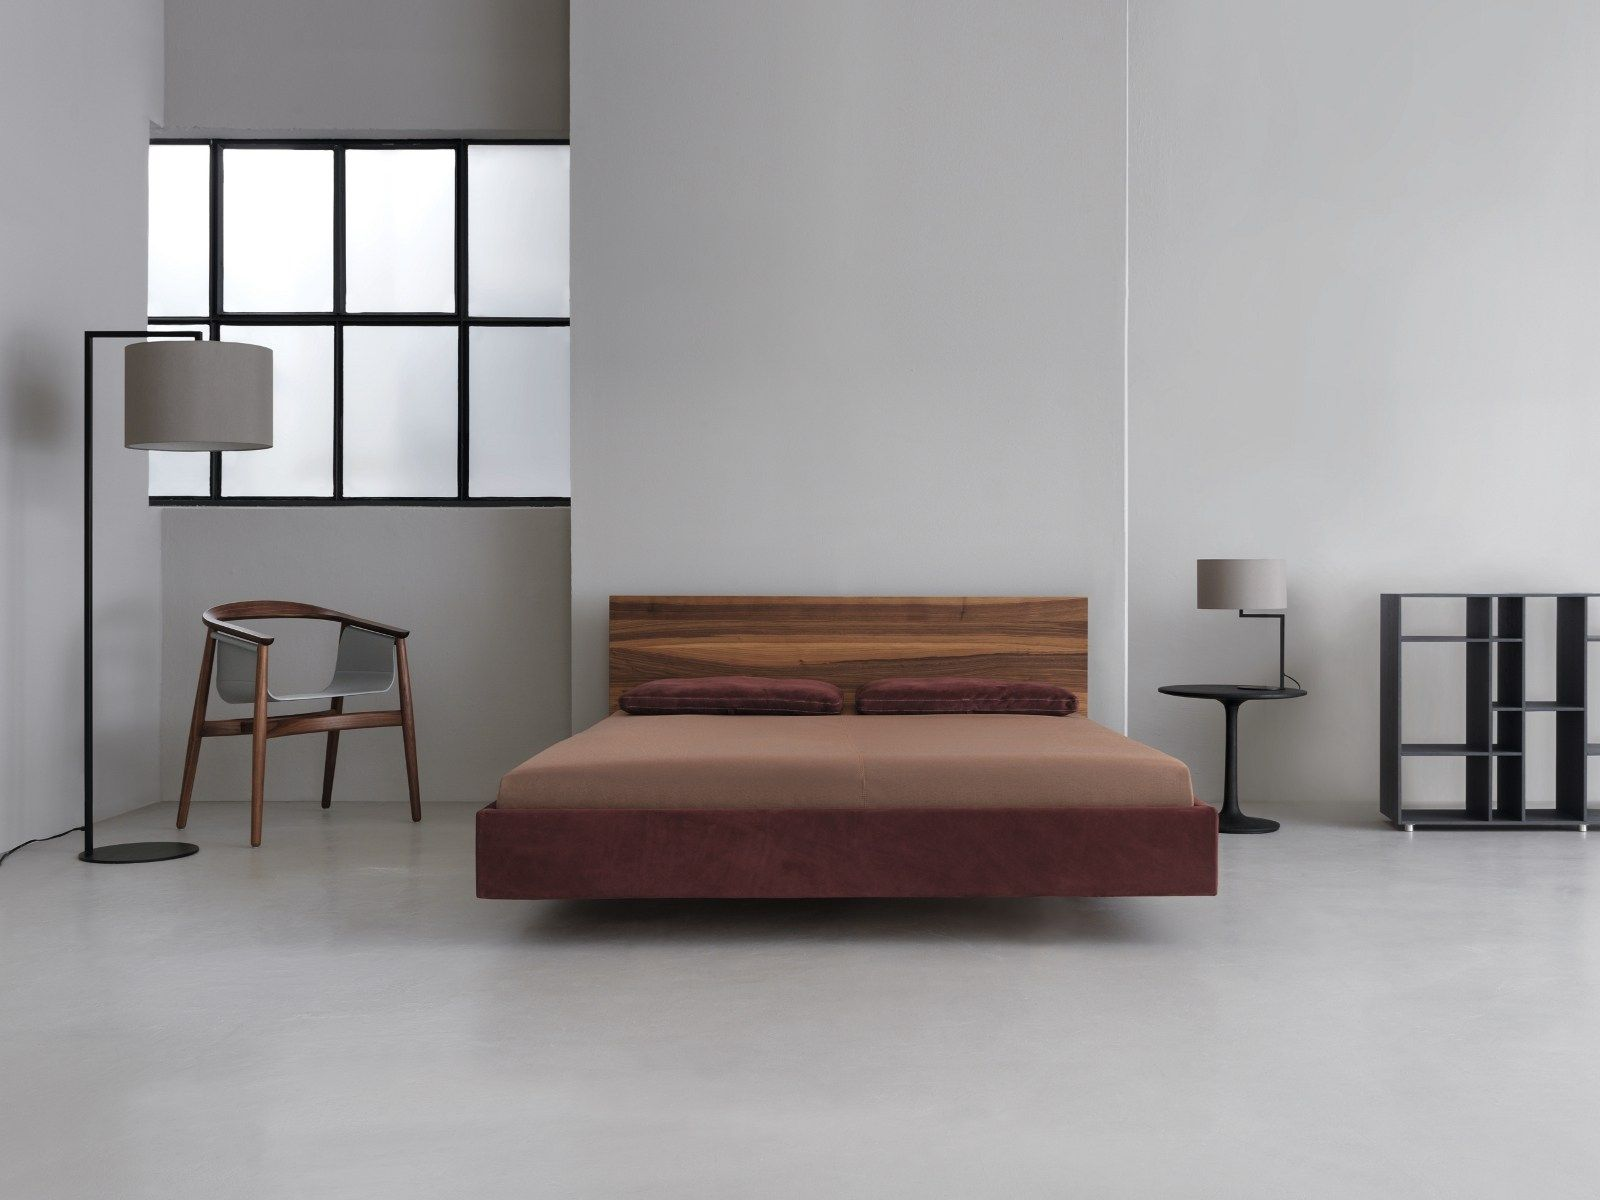 Cama doble de madera maciza SIMPLE SOFT by ZEITRAUM diseño ...